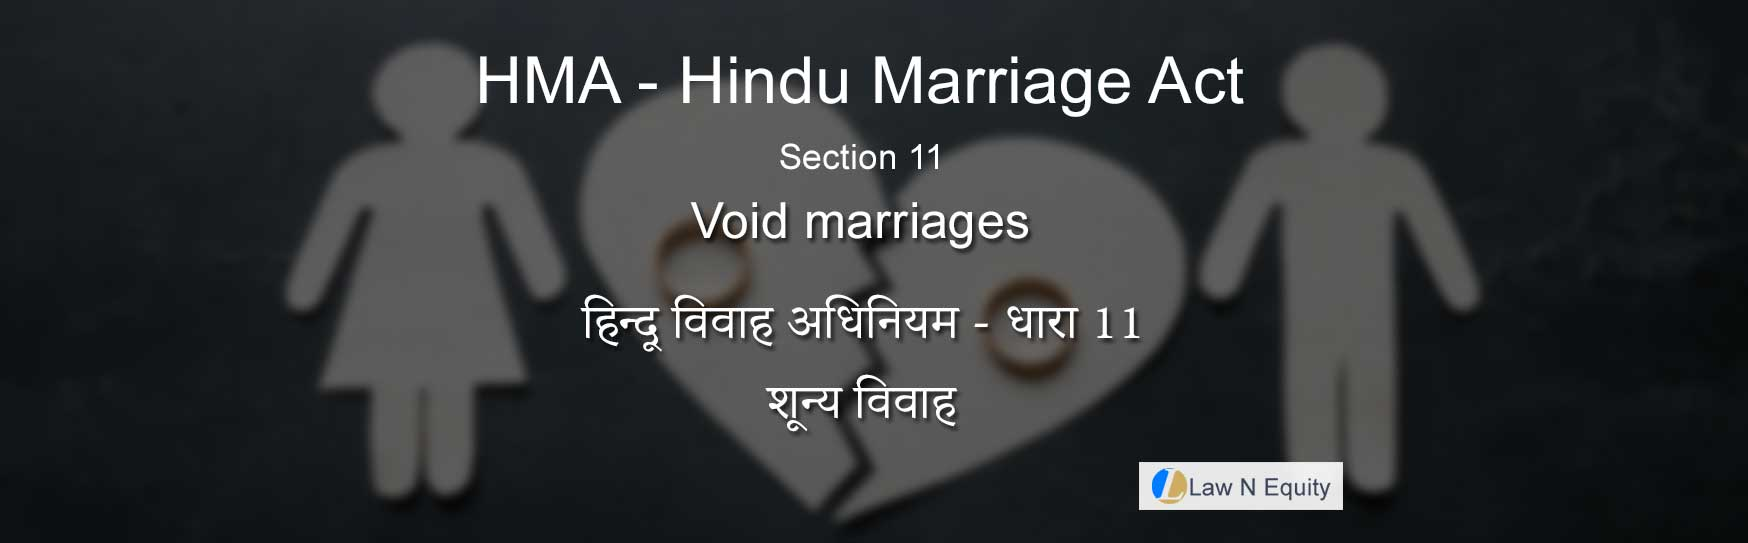 Hindu Marriage Act(HMA) Section 11